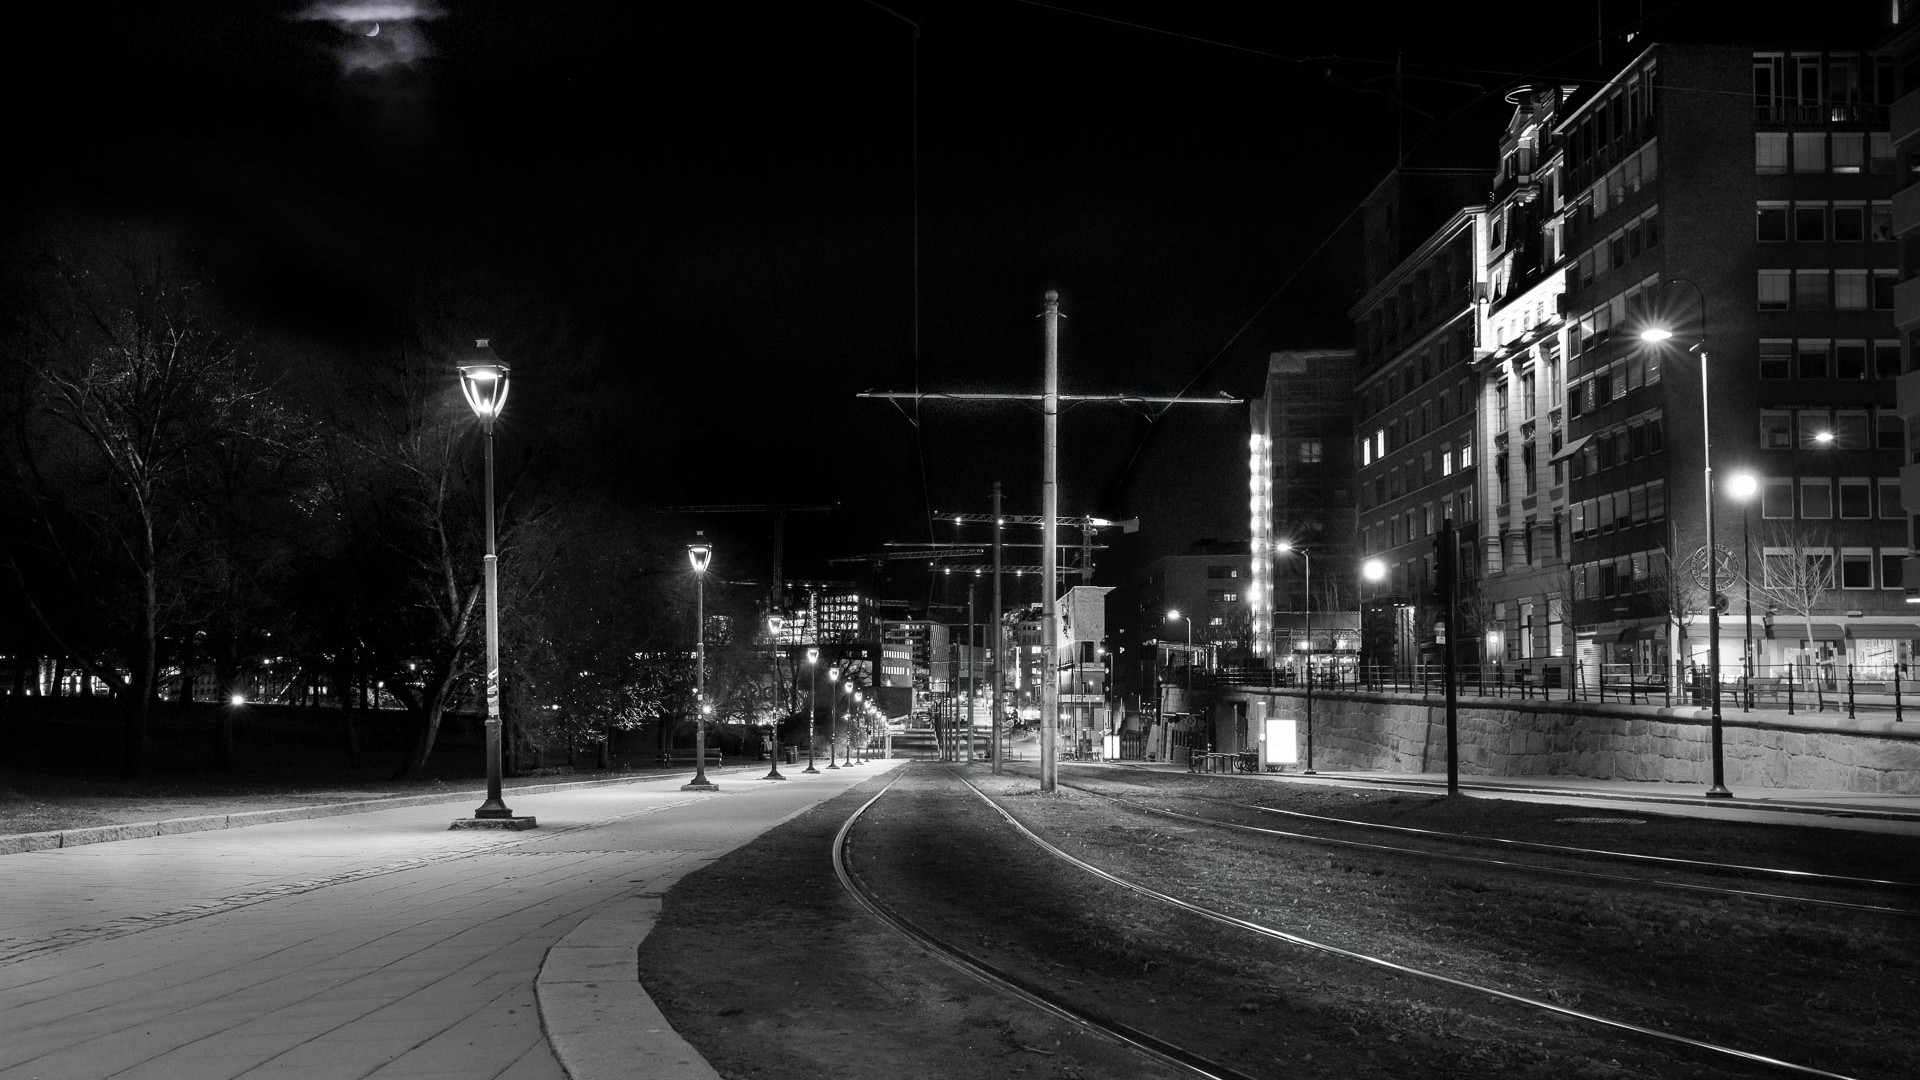 Oslo by night #1